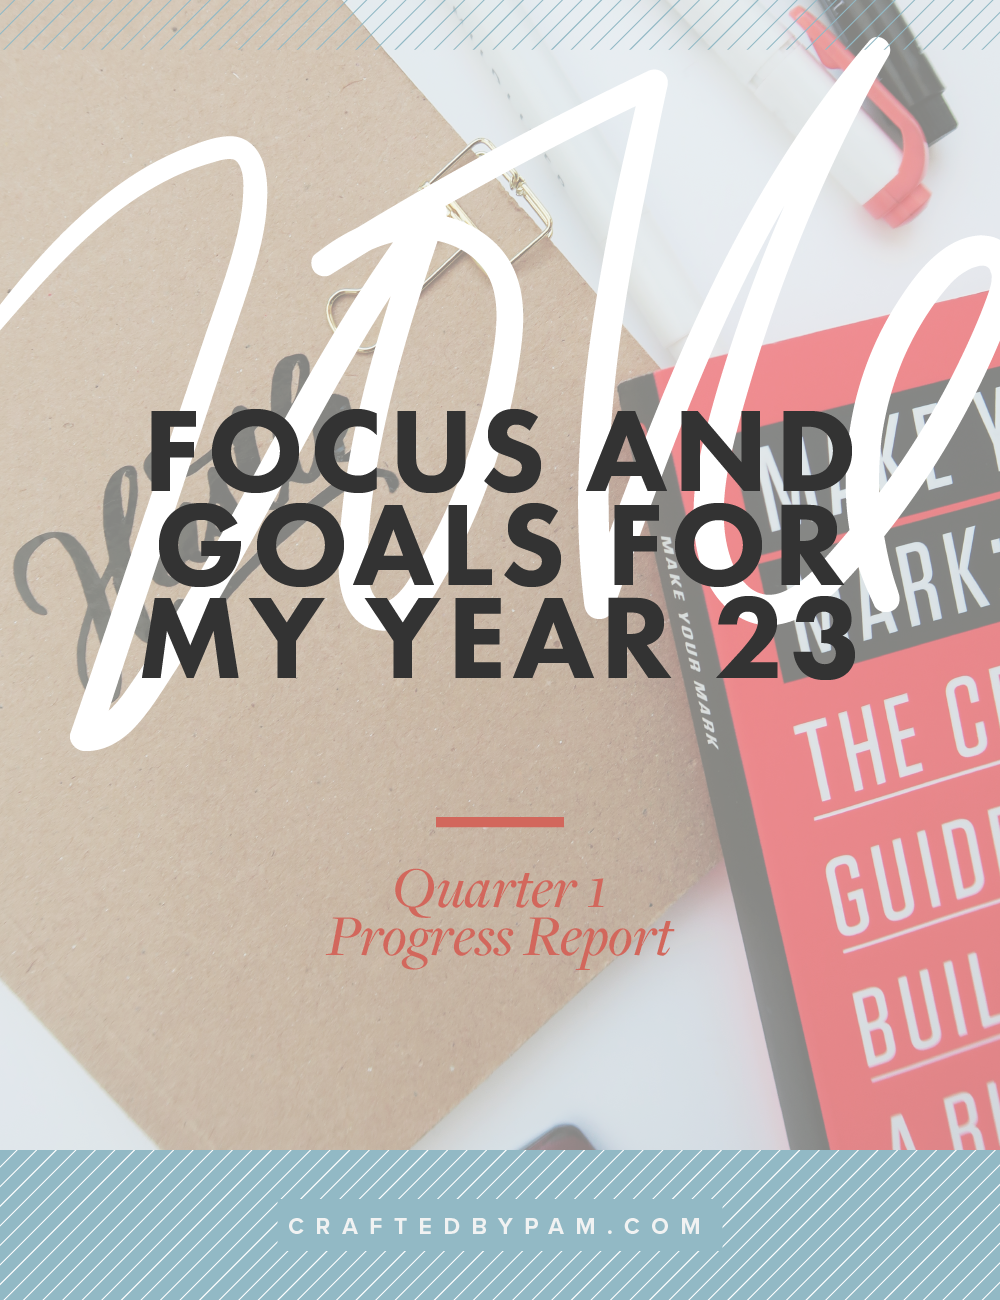 Year 23: Q1 Progress Report on Pam's 2016 Focus and Goals | Crafted by Pam